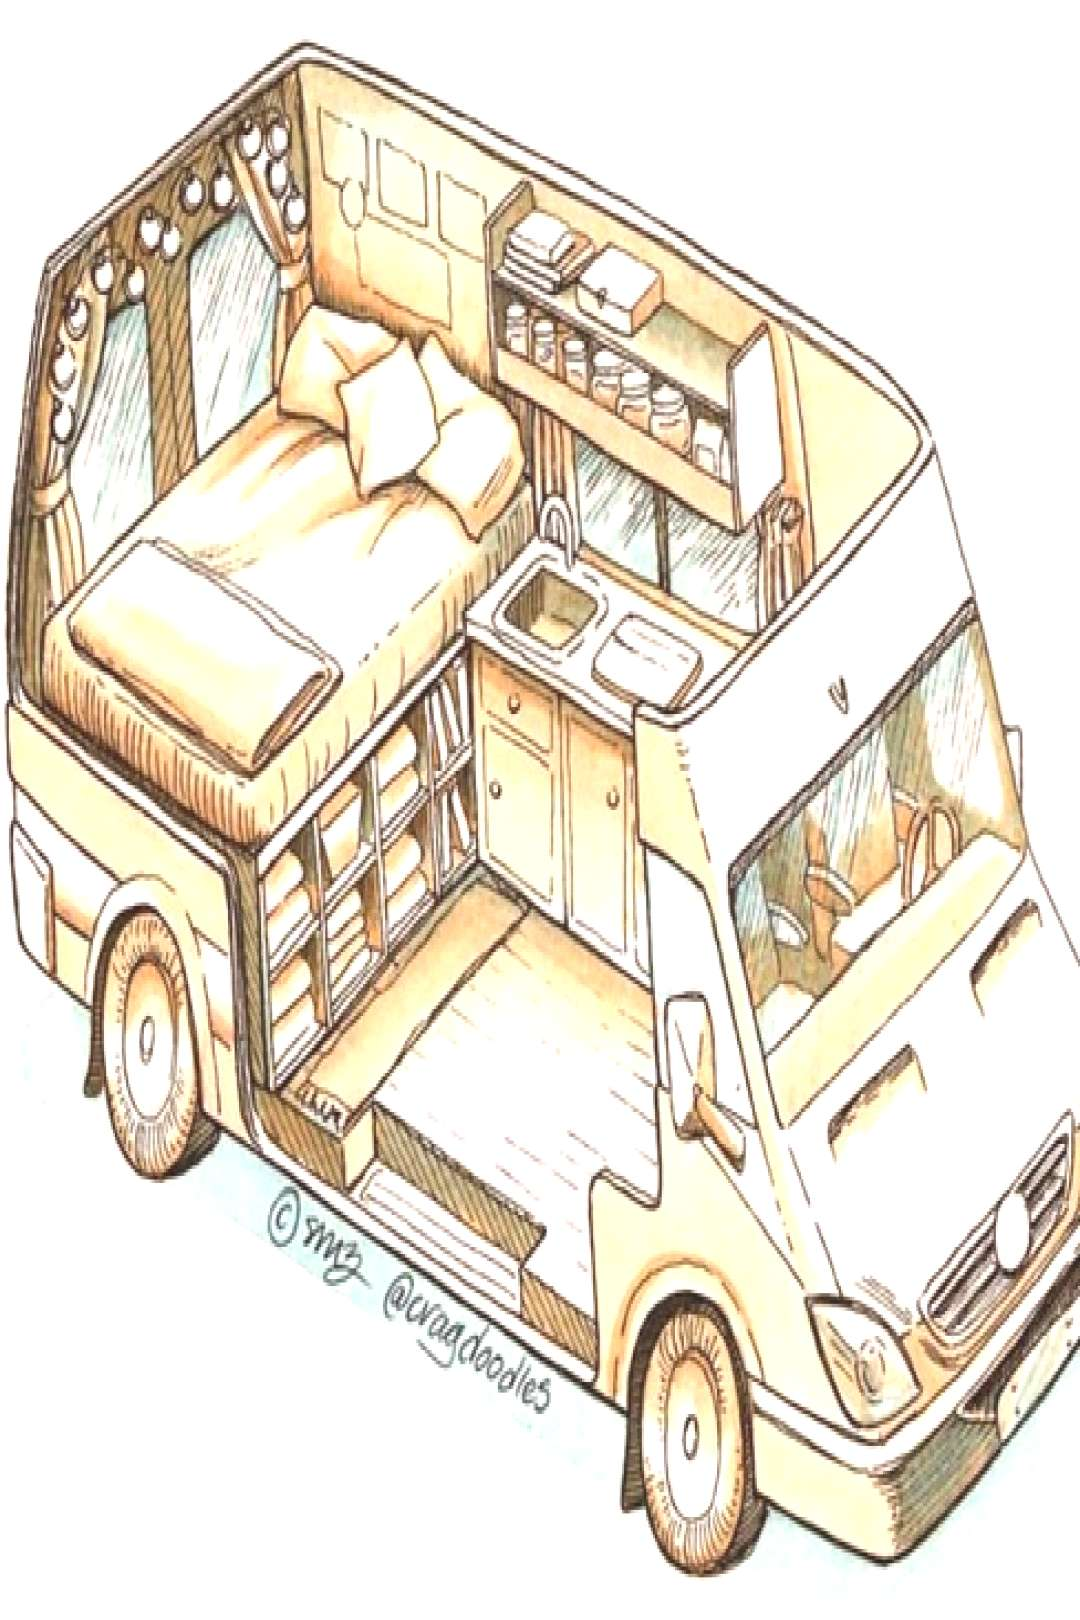 Yes! Travel and tiny homebase in one